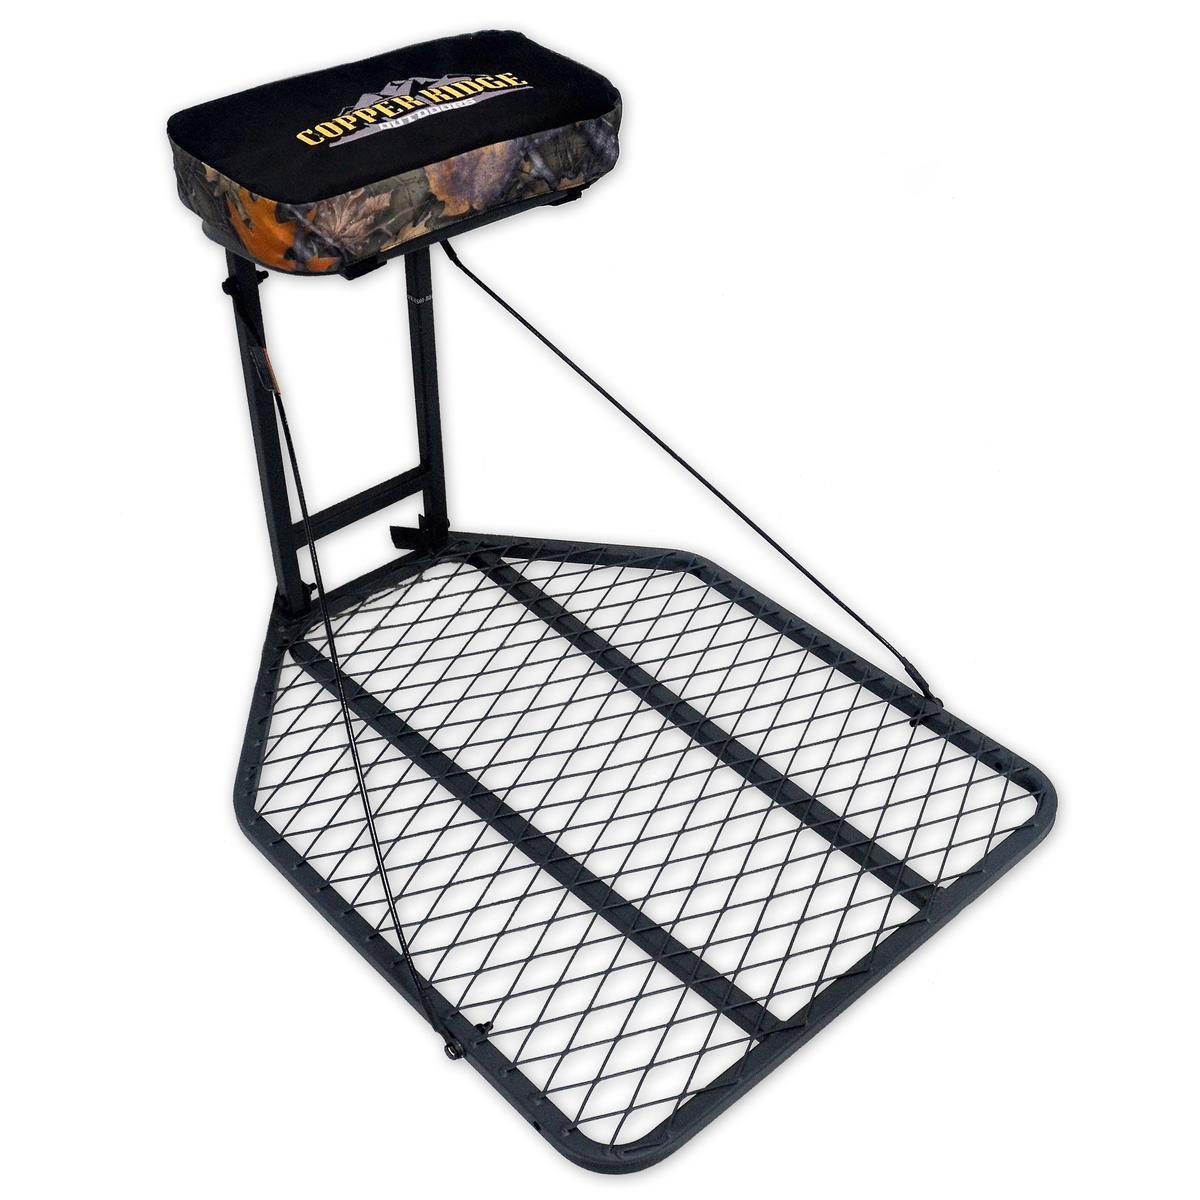 "Copper Ridge Outdoors Tree Stand - Hang On Deer Stand, Large 24"" x 32"" Foot Platform, Flip Up Padded Seat, Steel Construction, 300 lb. Weight Capacity, Treestand for Deer Hunting by Copper Ridge Outdoors (Image #1)"